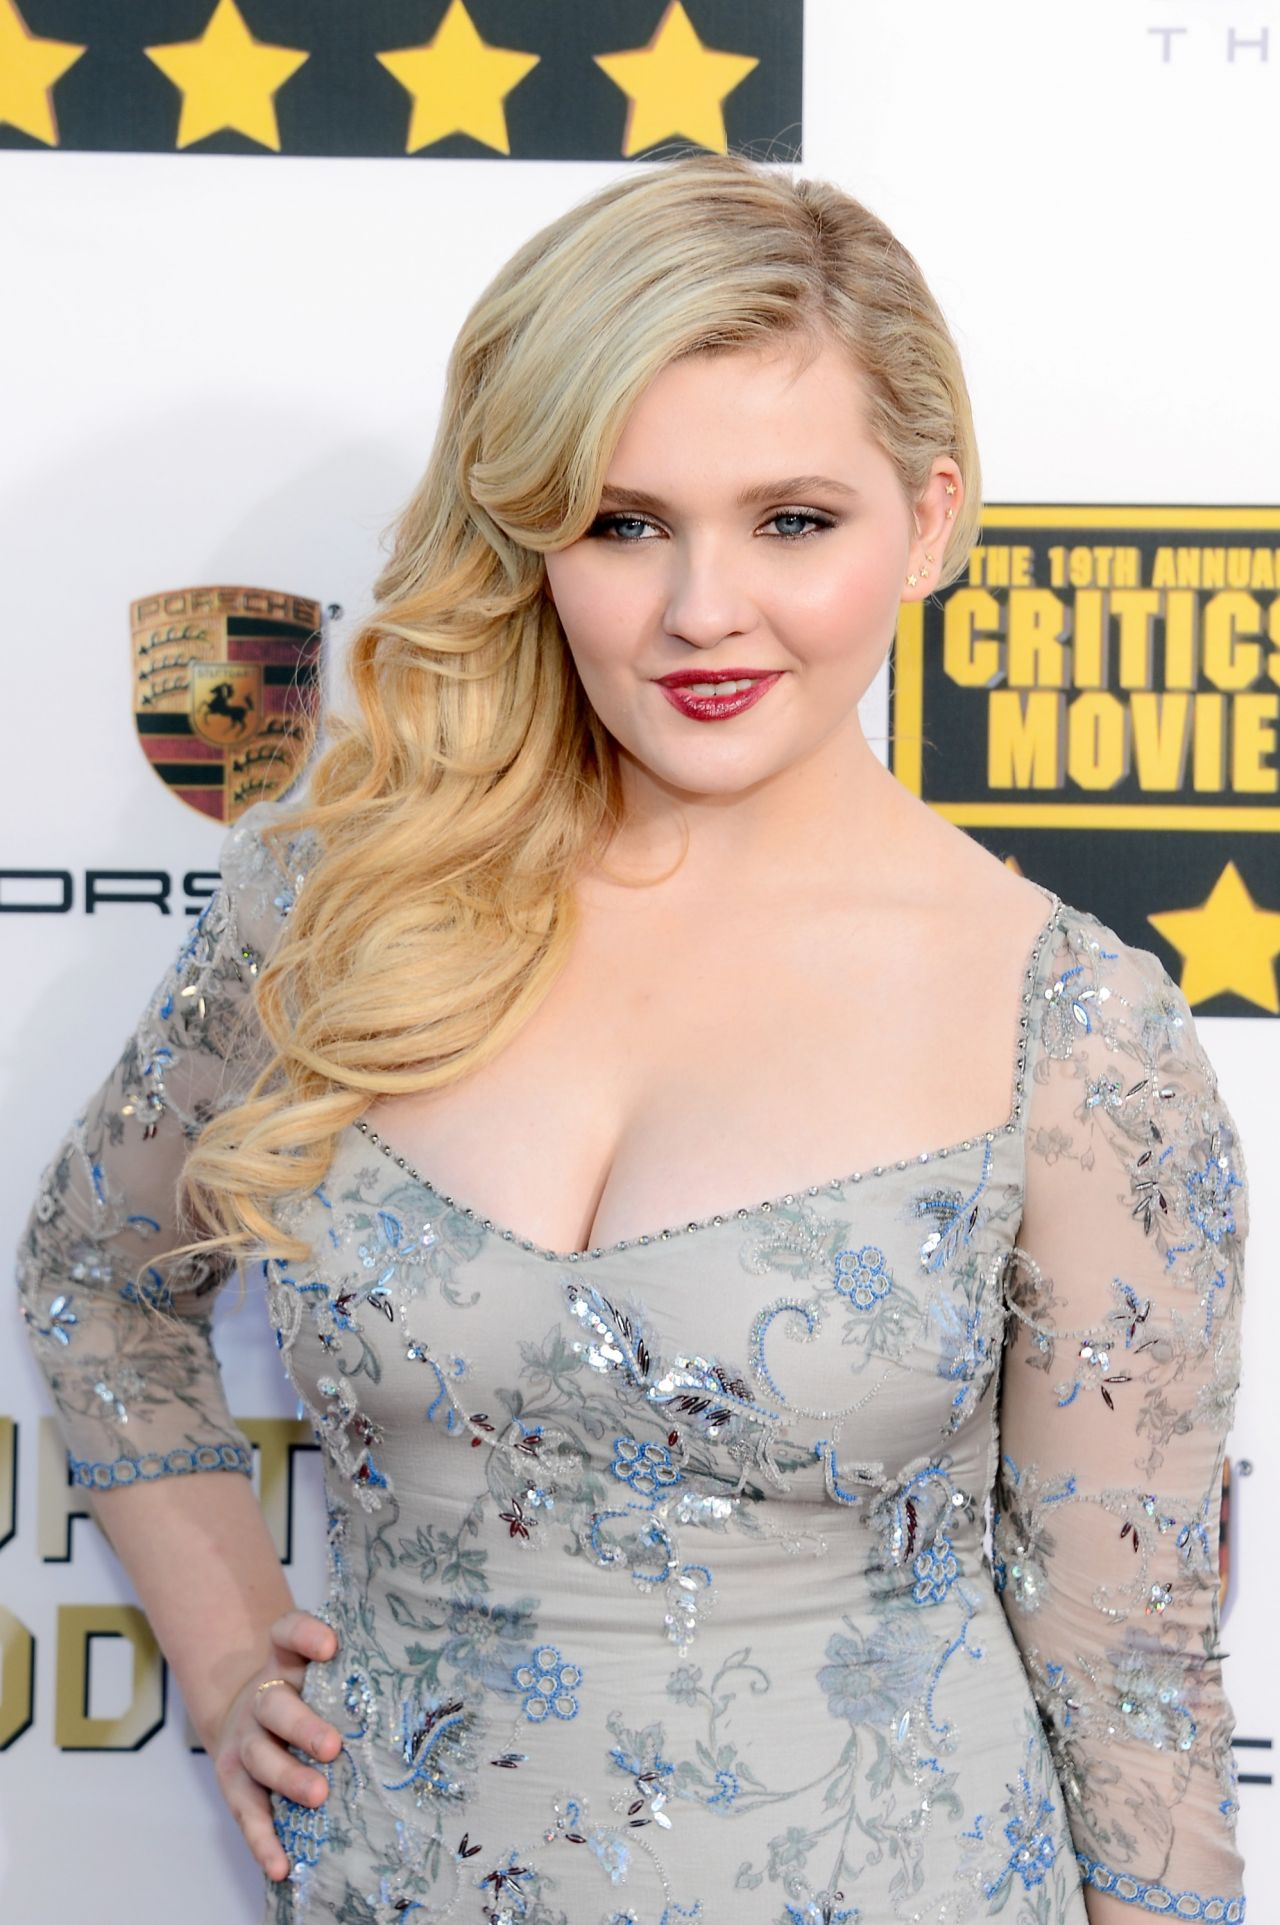 Cigarette Wallpaper Hd Abigail Breslin 2014 Critics Choice Movie Awards In